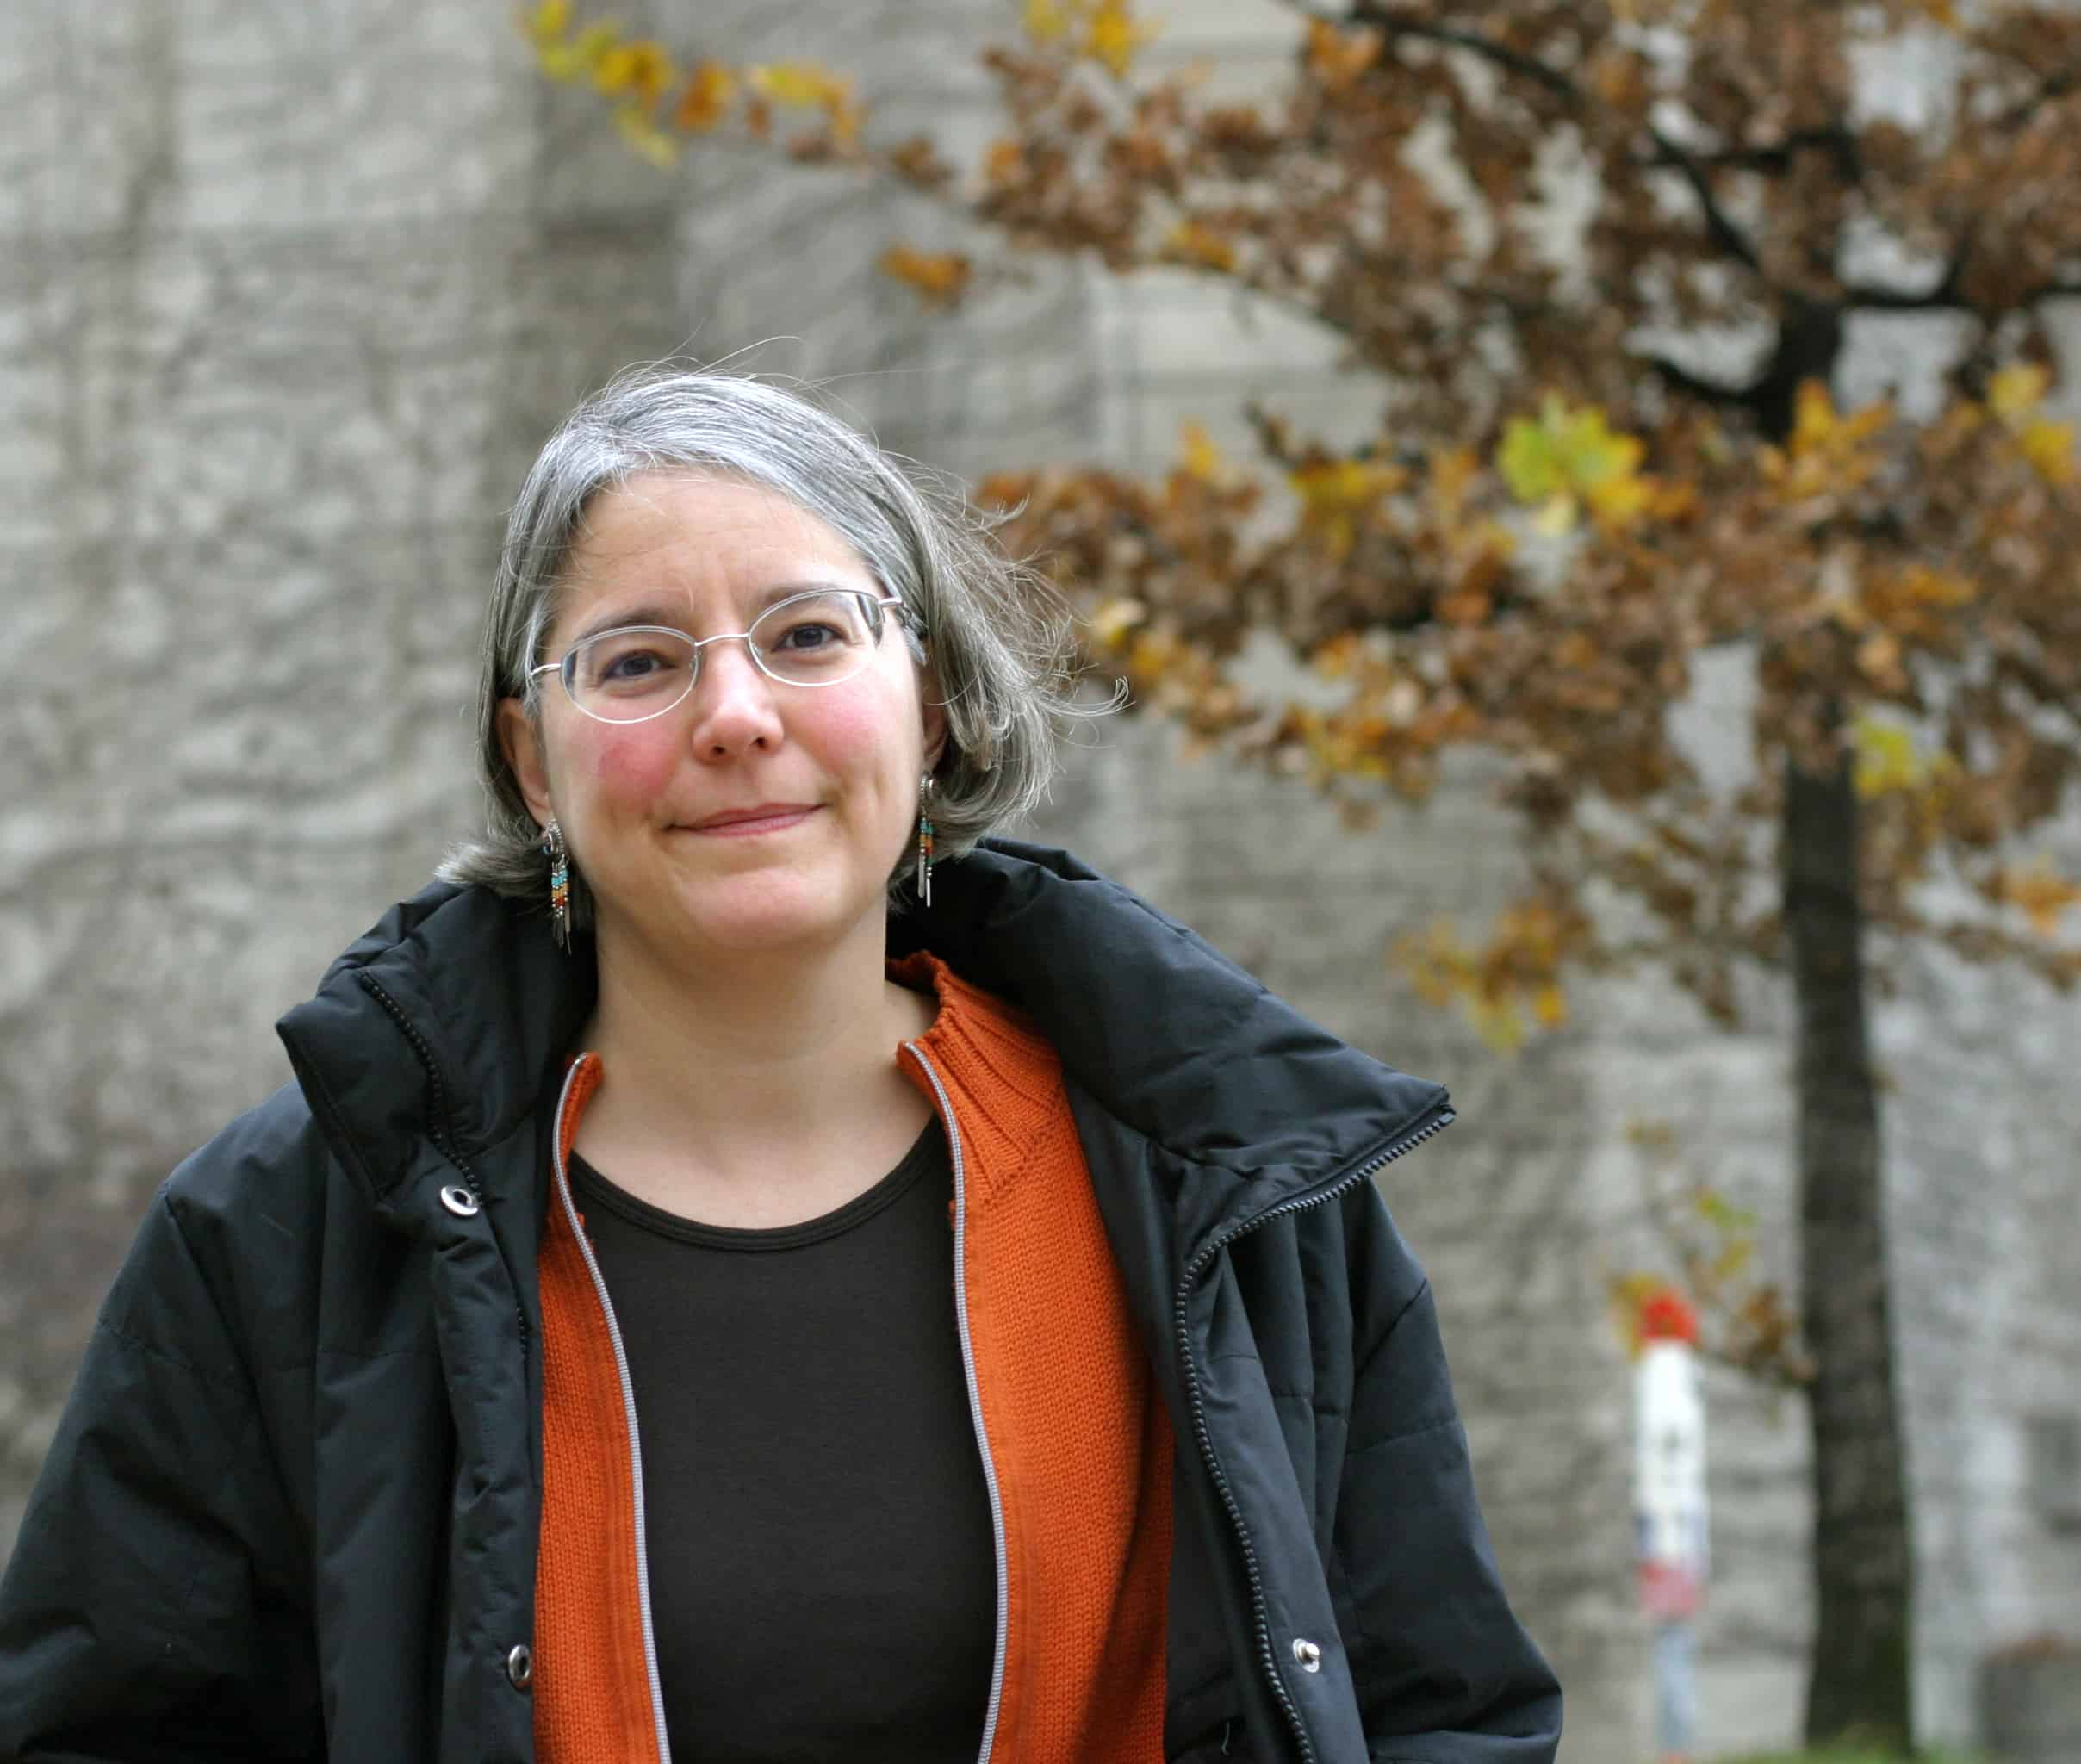 Dr. Marie-Josée Fortin studies the probability of organism movement. PHOTO COURTESY OF THE UNIVERSITY OF TORONTO